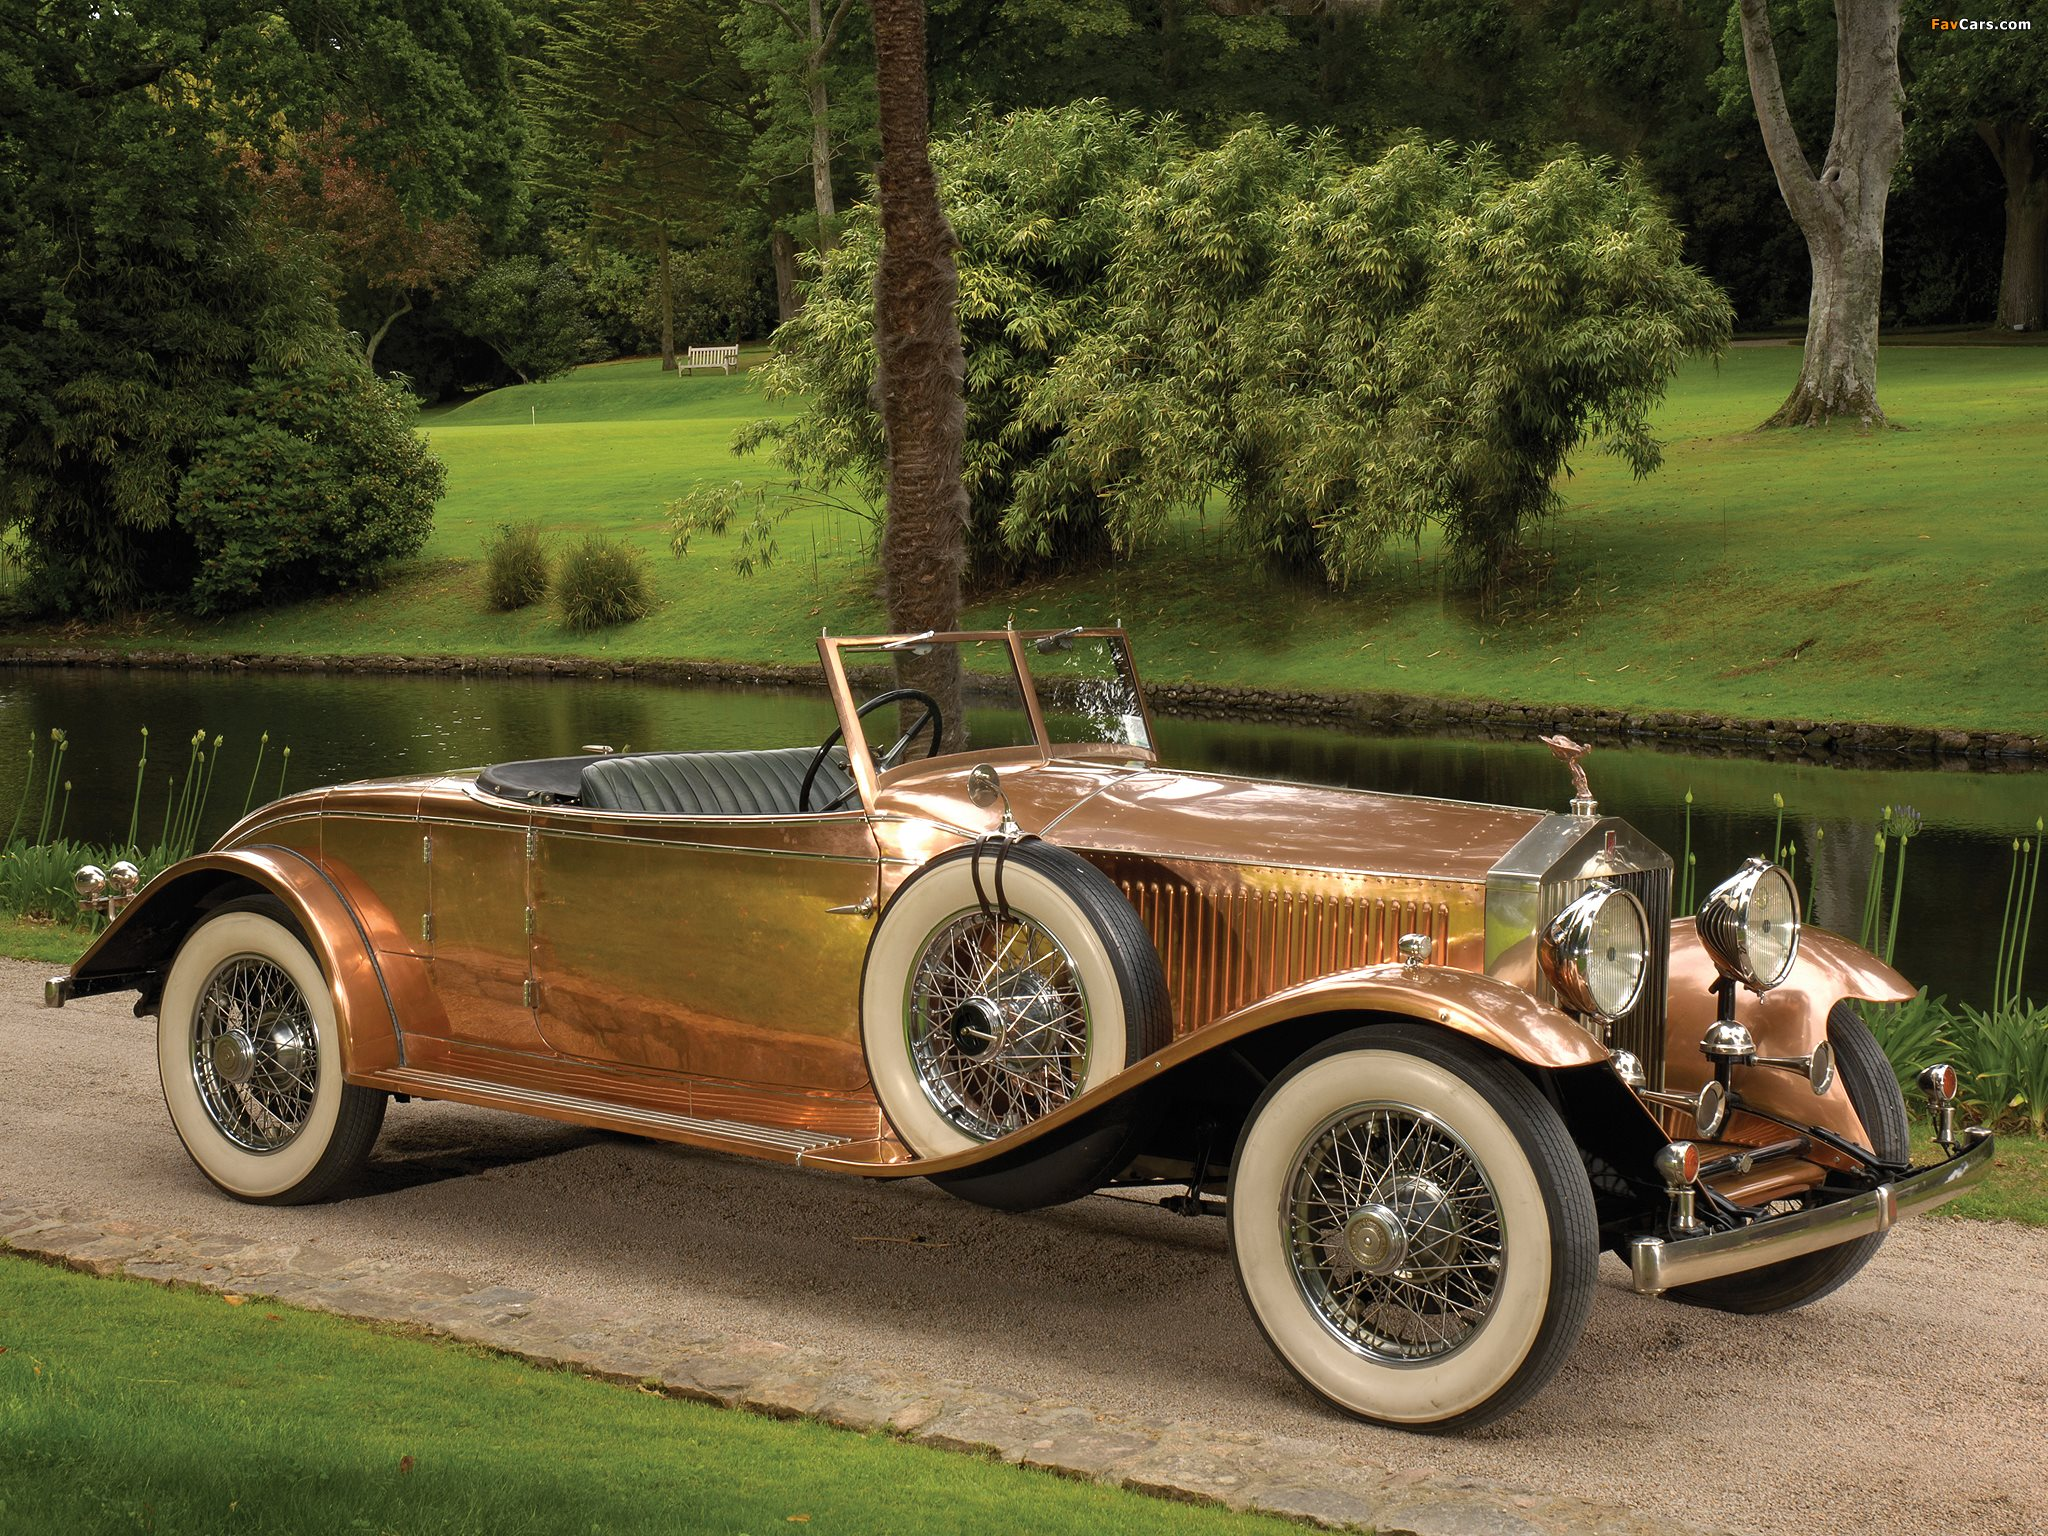 The-copper-bodied-1930-Rolls-Royce-Phantom-II-Open-Tourer-1